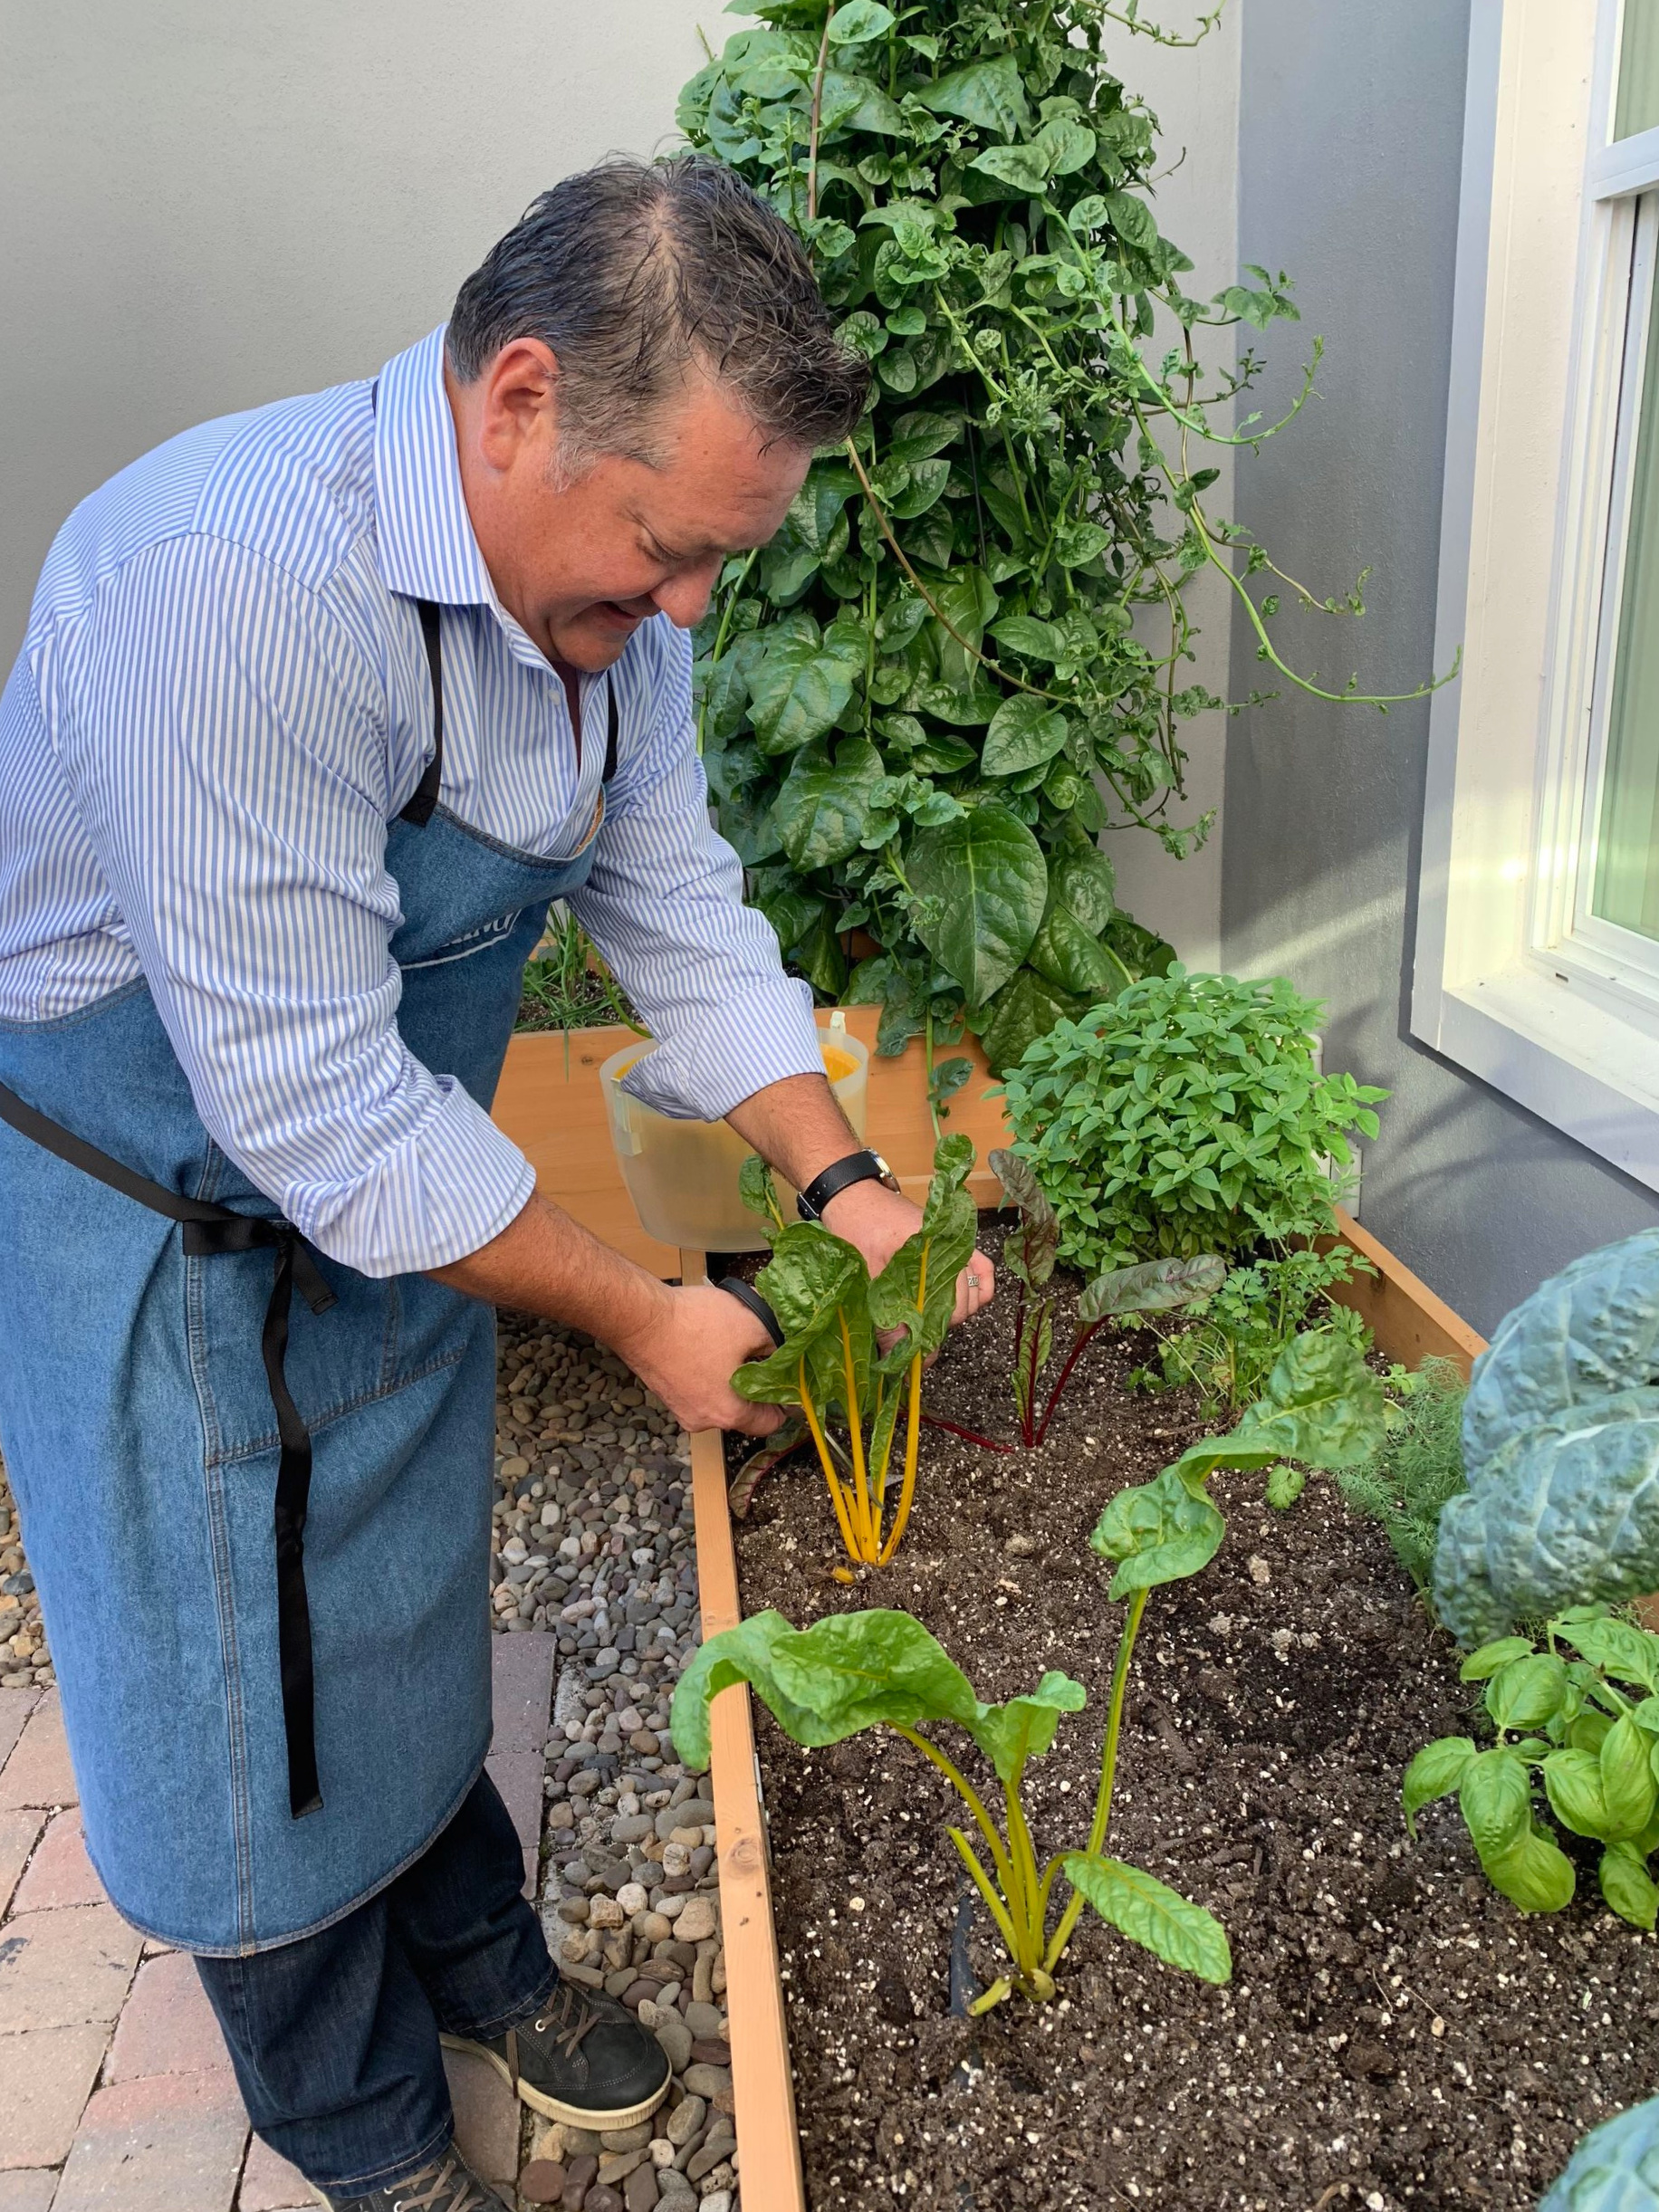 Chef Andy from Fueling Performance Athletes harvesting produce from the garden for a plant-based cooking workshop